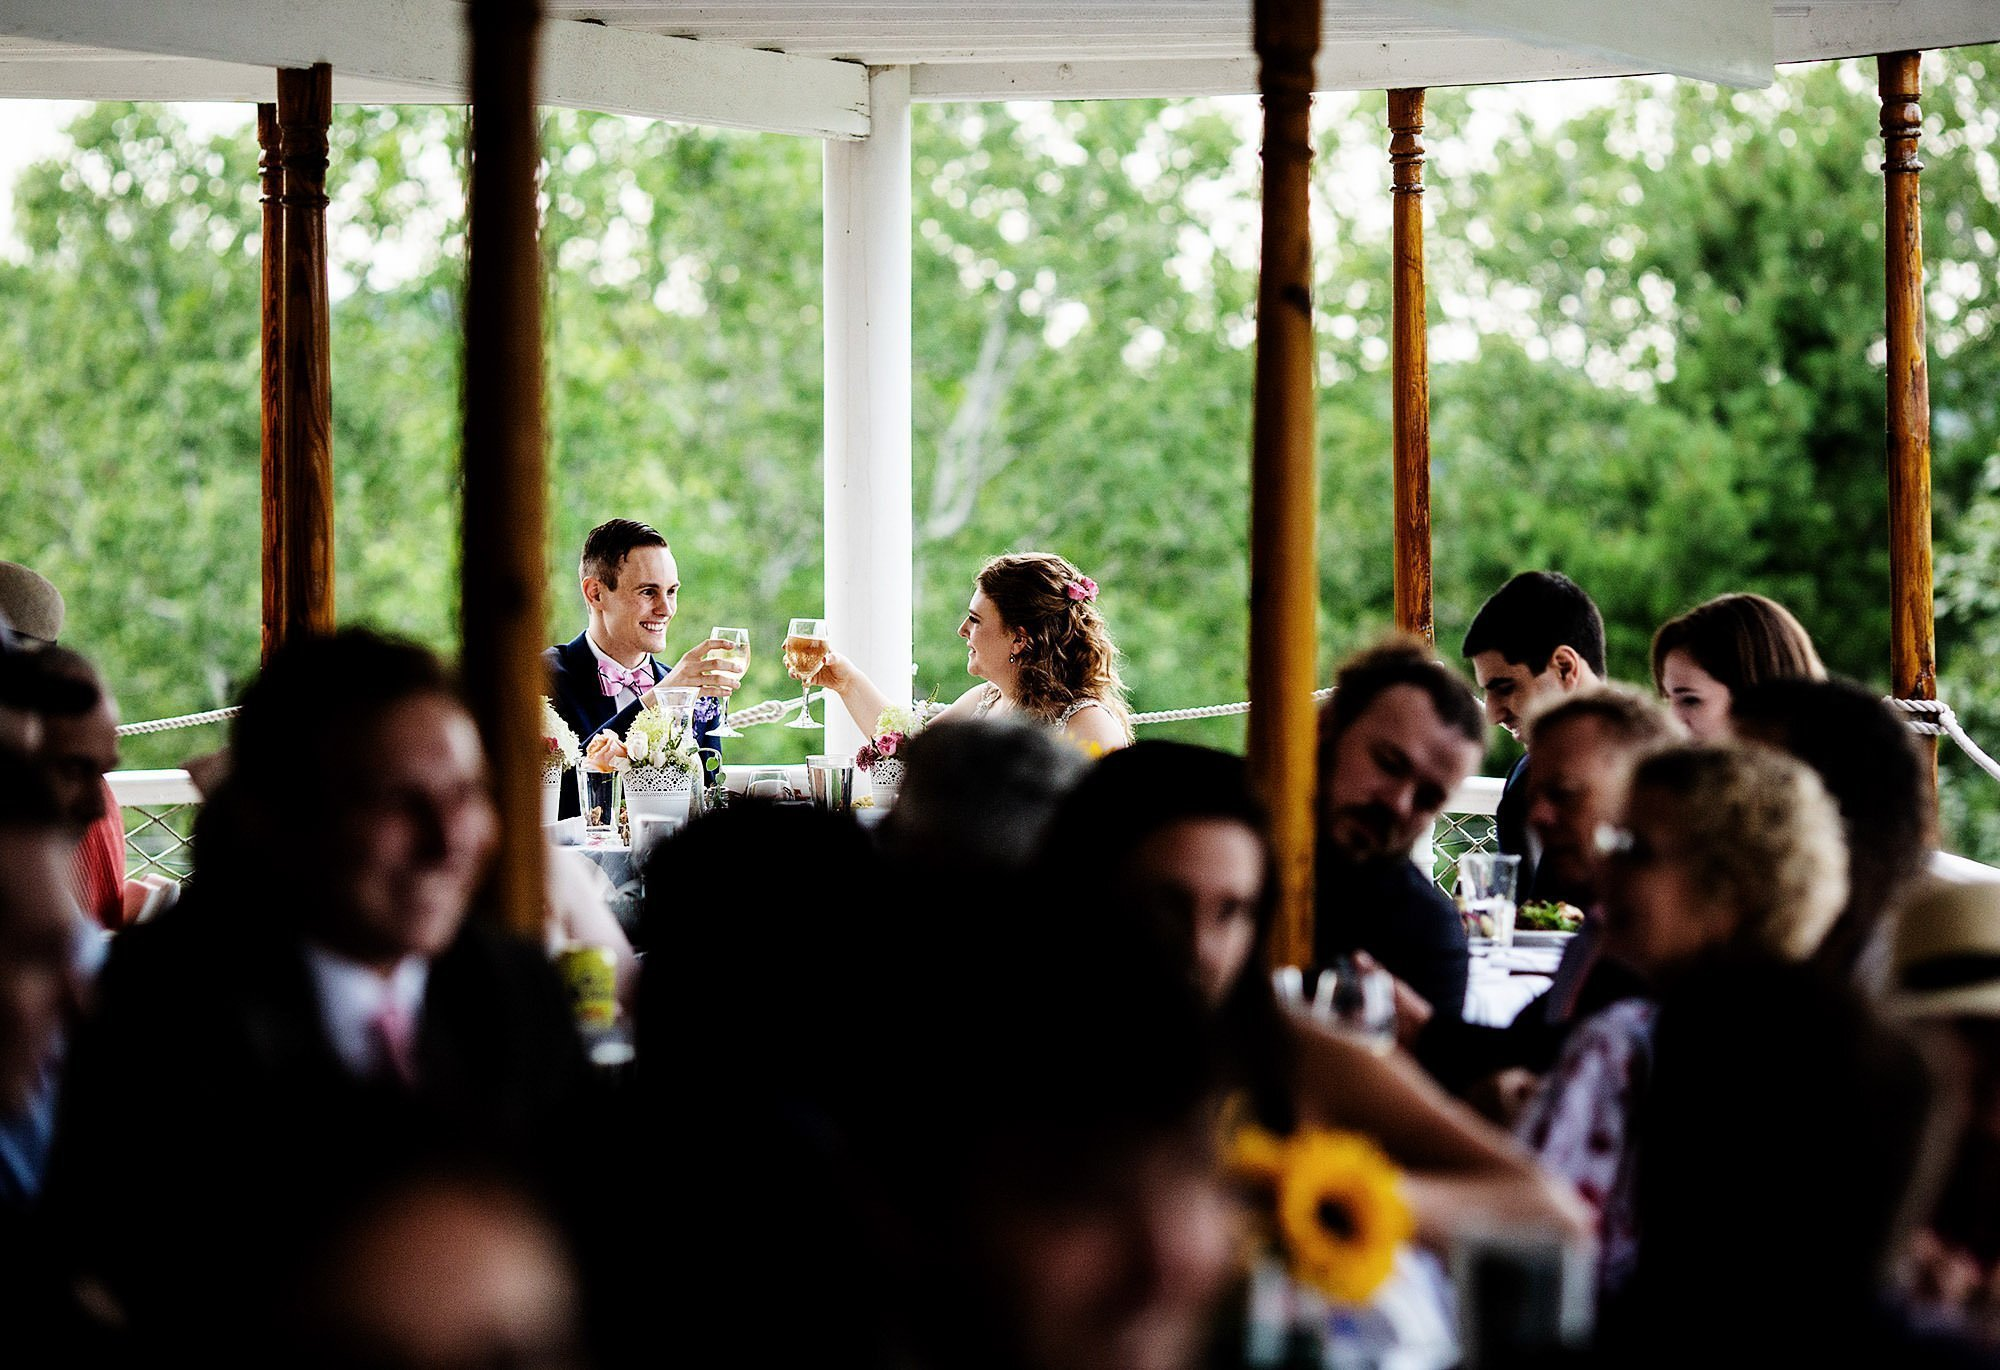 Shelburne Museum Wedding  I  The bride and groom toast during the wedding reception.